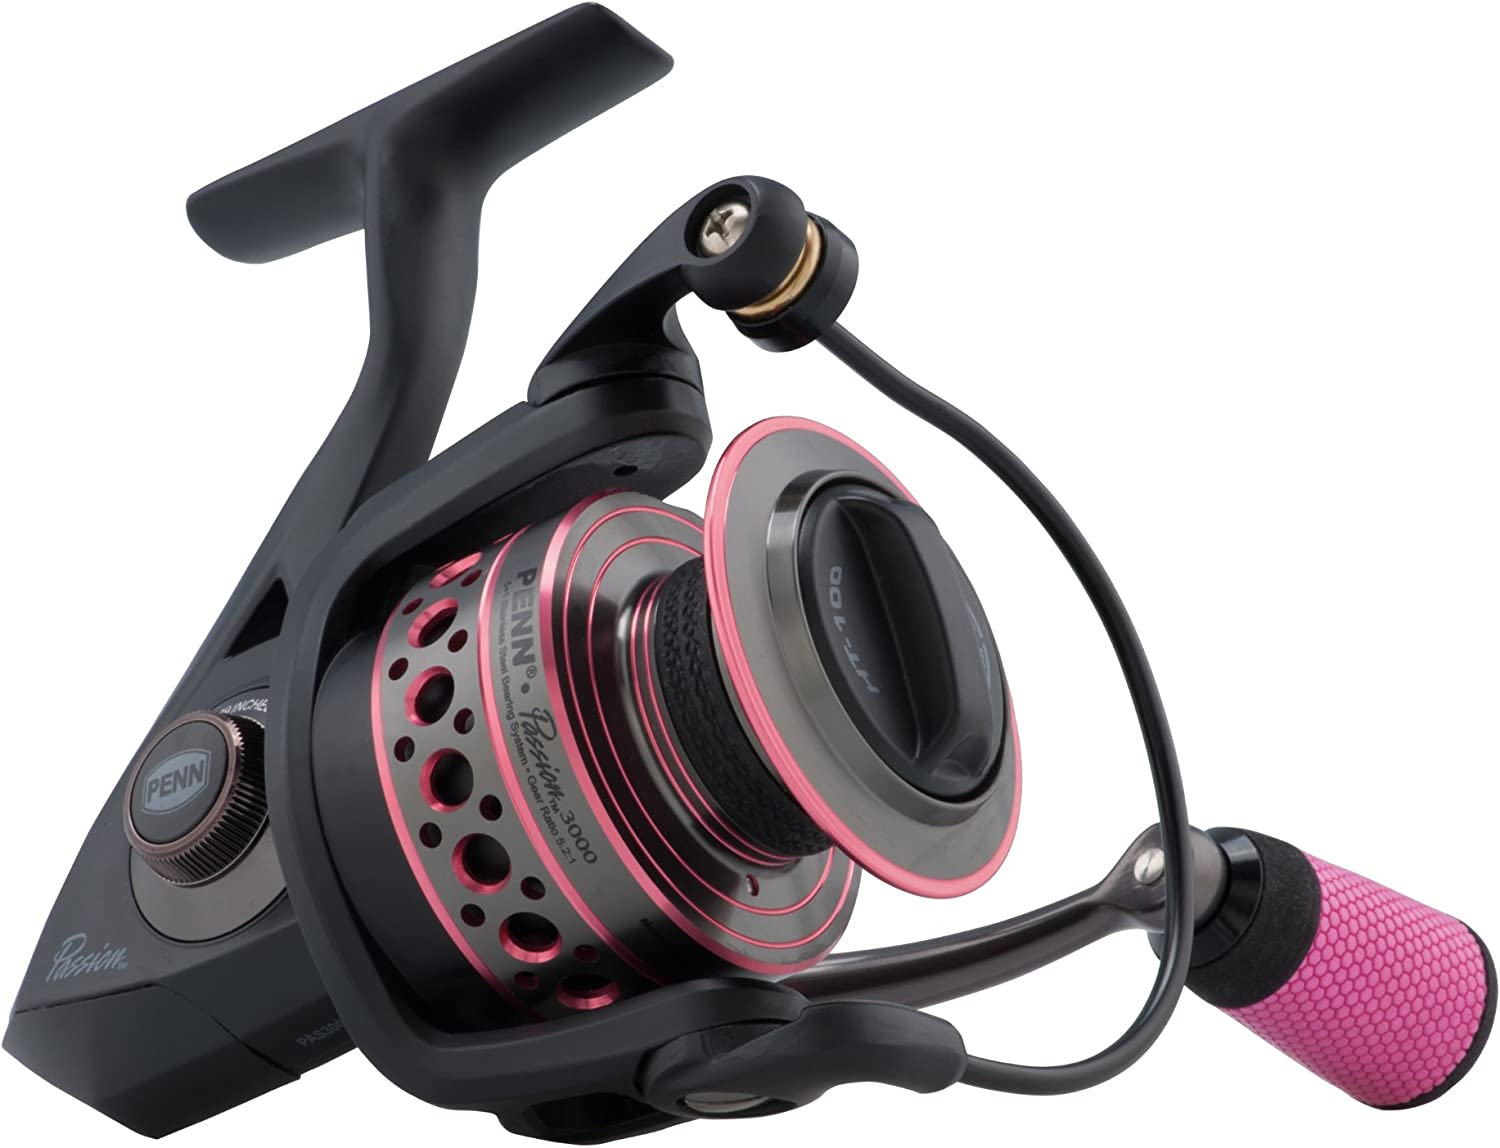 Penn Passion Lady Spinning Reel